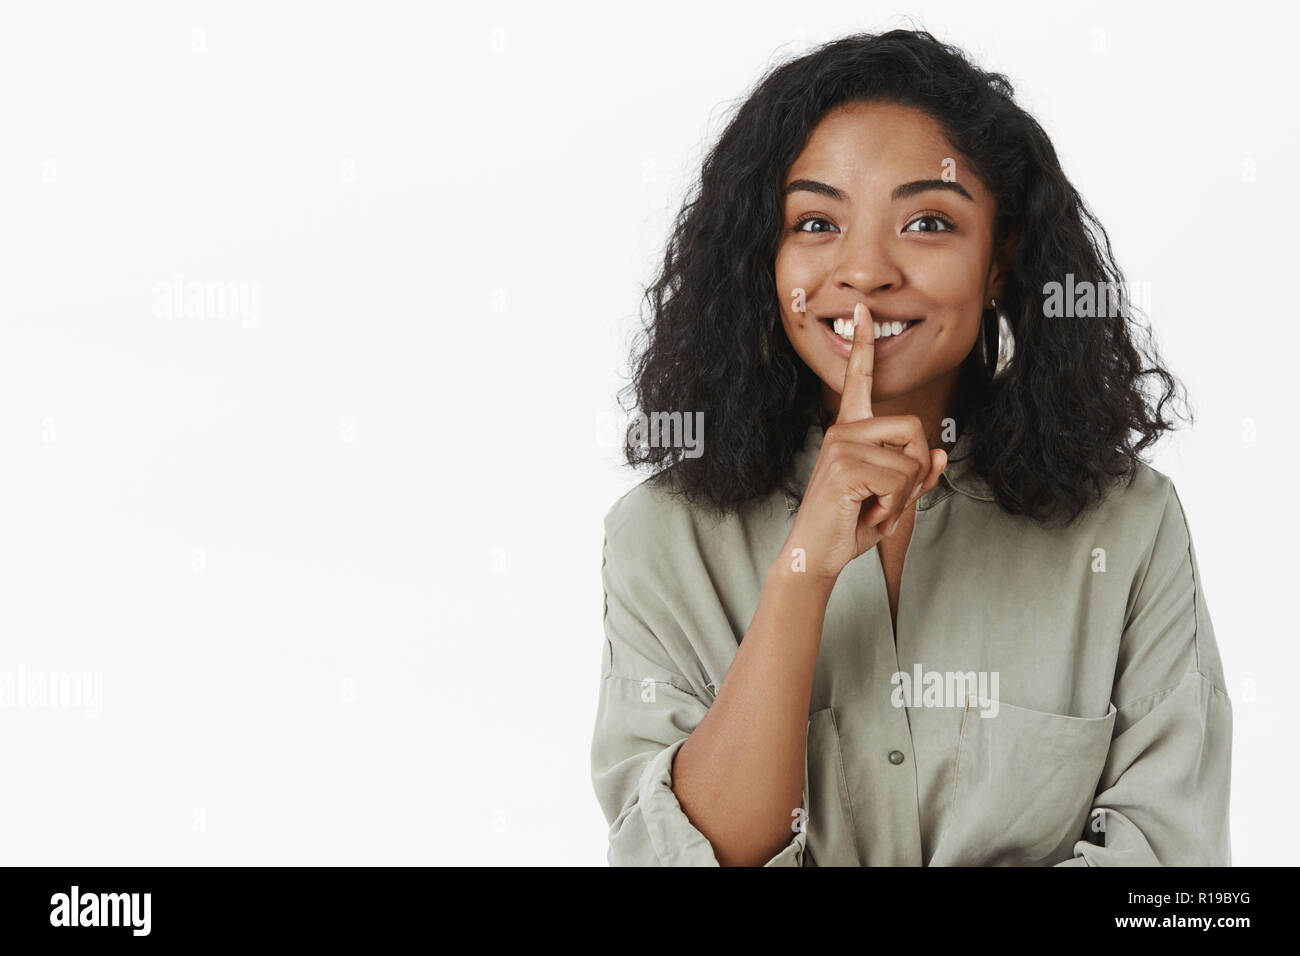 Shh can you keep secrets. Portrait of charming friendly-looking delighted  cute dark-skinned woman with curly hairstyle saying shush and smiling  prepar Stock Photo - Alamy